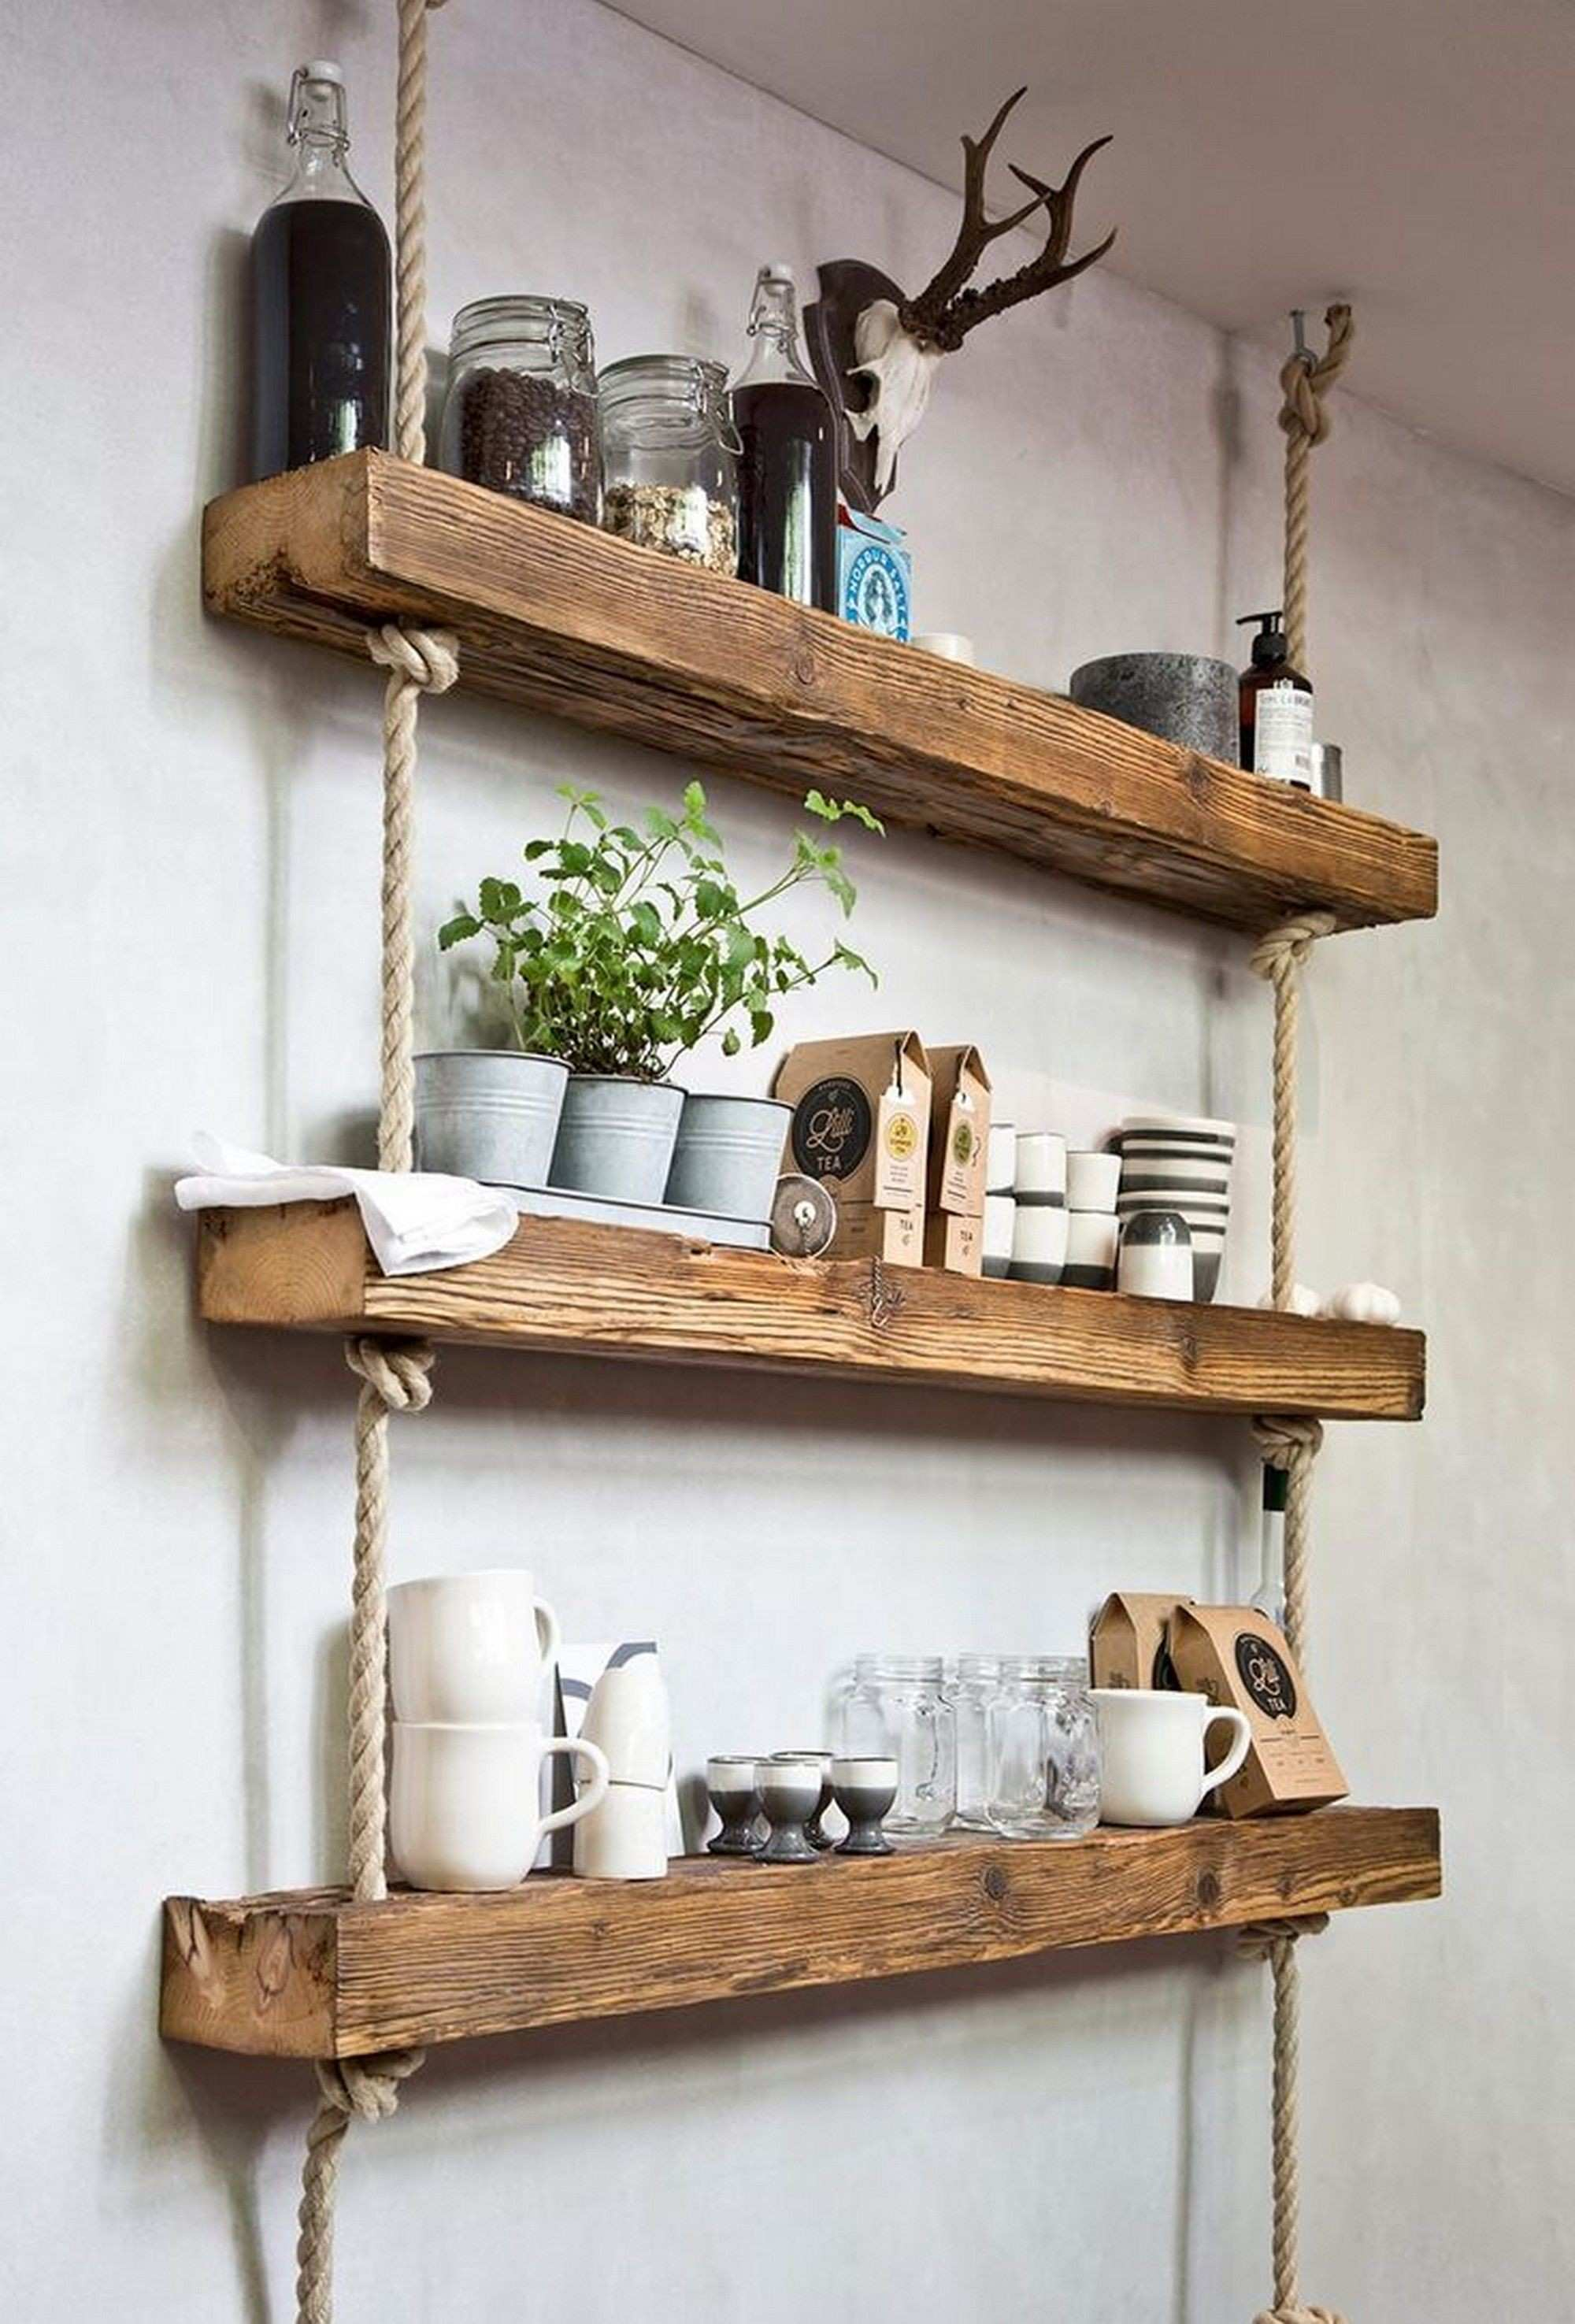 Easy and Stylish DIY wooden wall shelves ideas